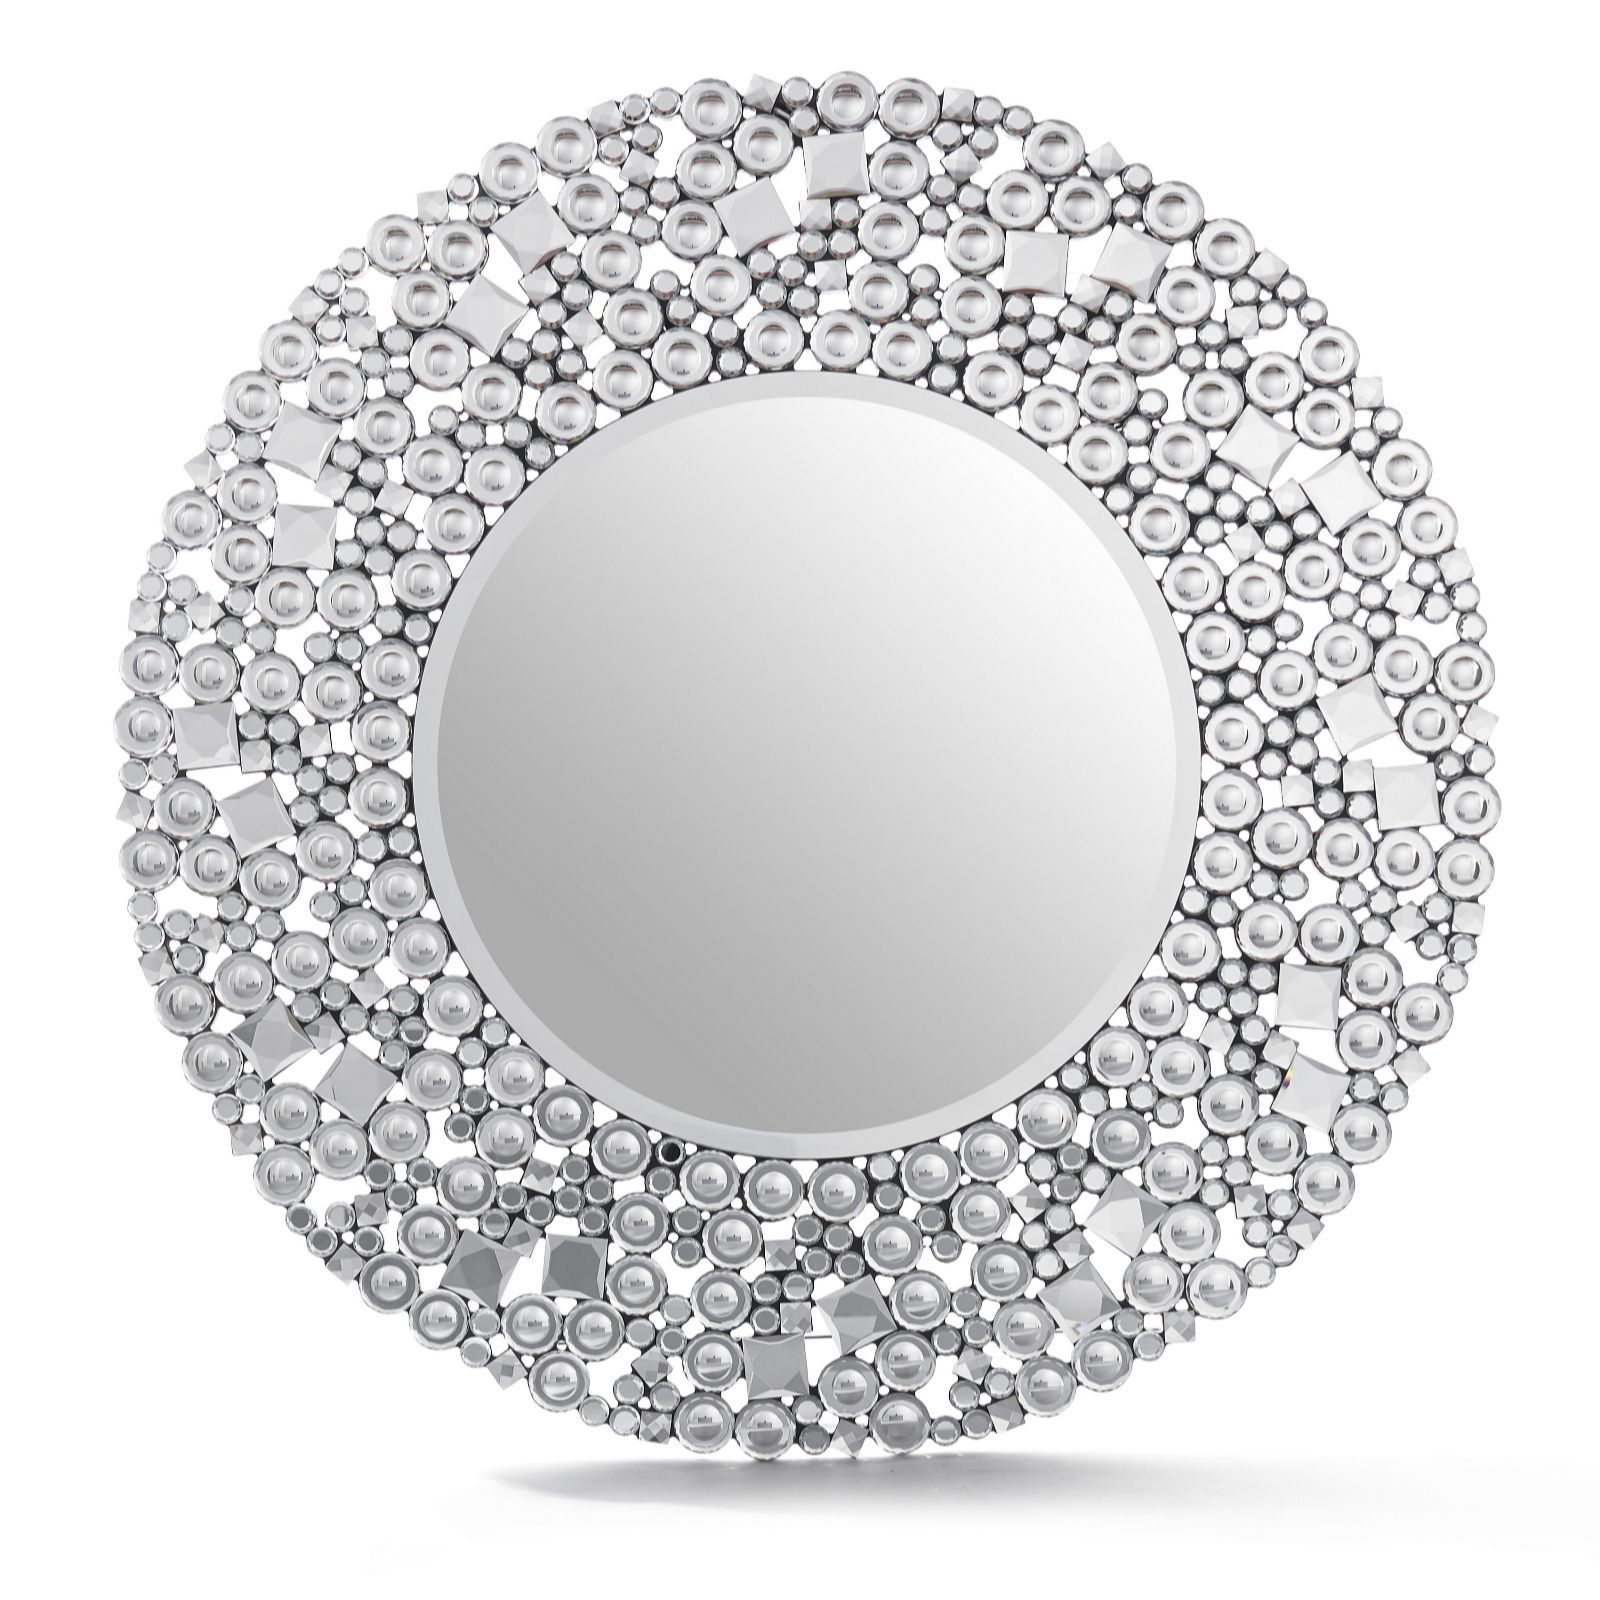 Large Round Silver Mirror Part - 38: 804953 JM By Julien Macdonald Signature Circular Crystal Mirror QVC PRICE:  £366.00 INTRODUCTORY PRICE